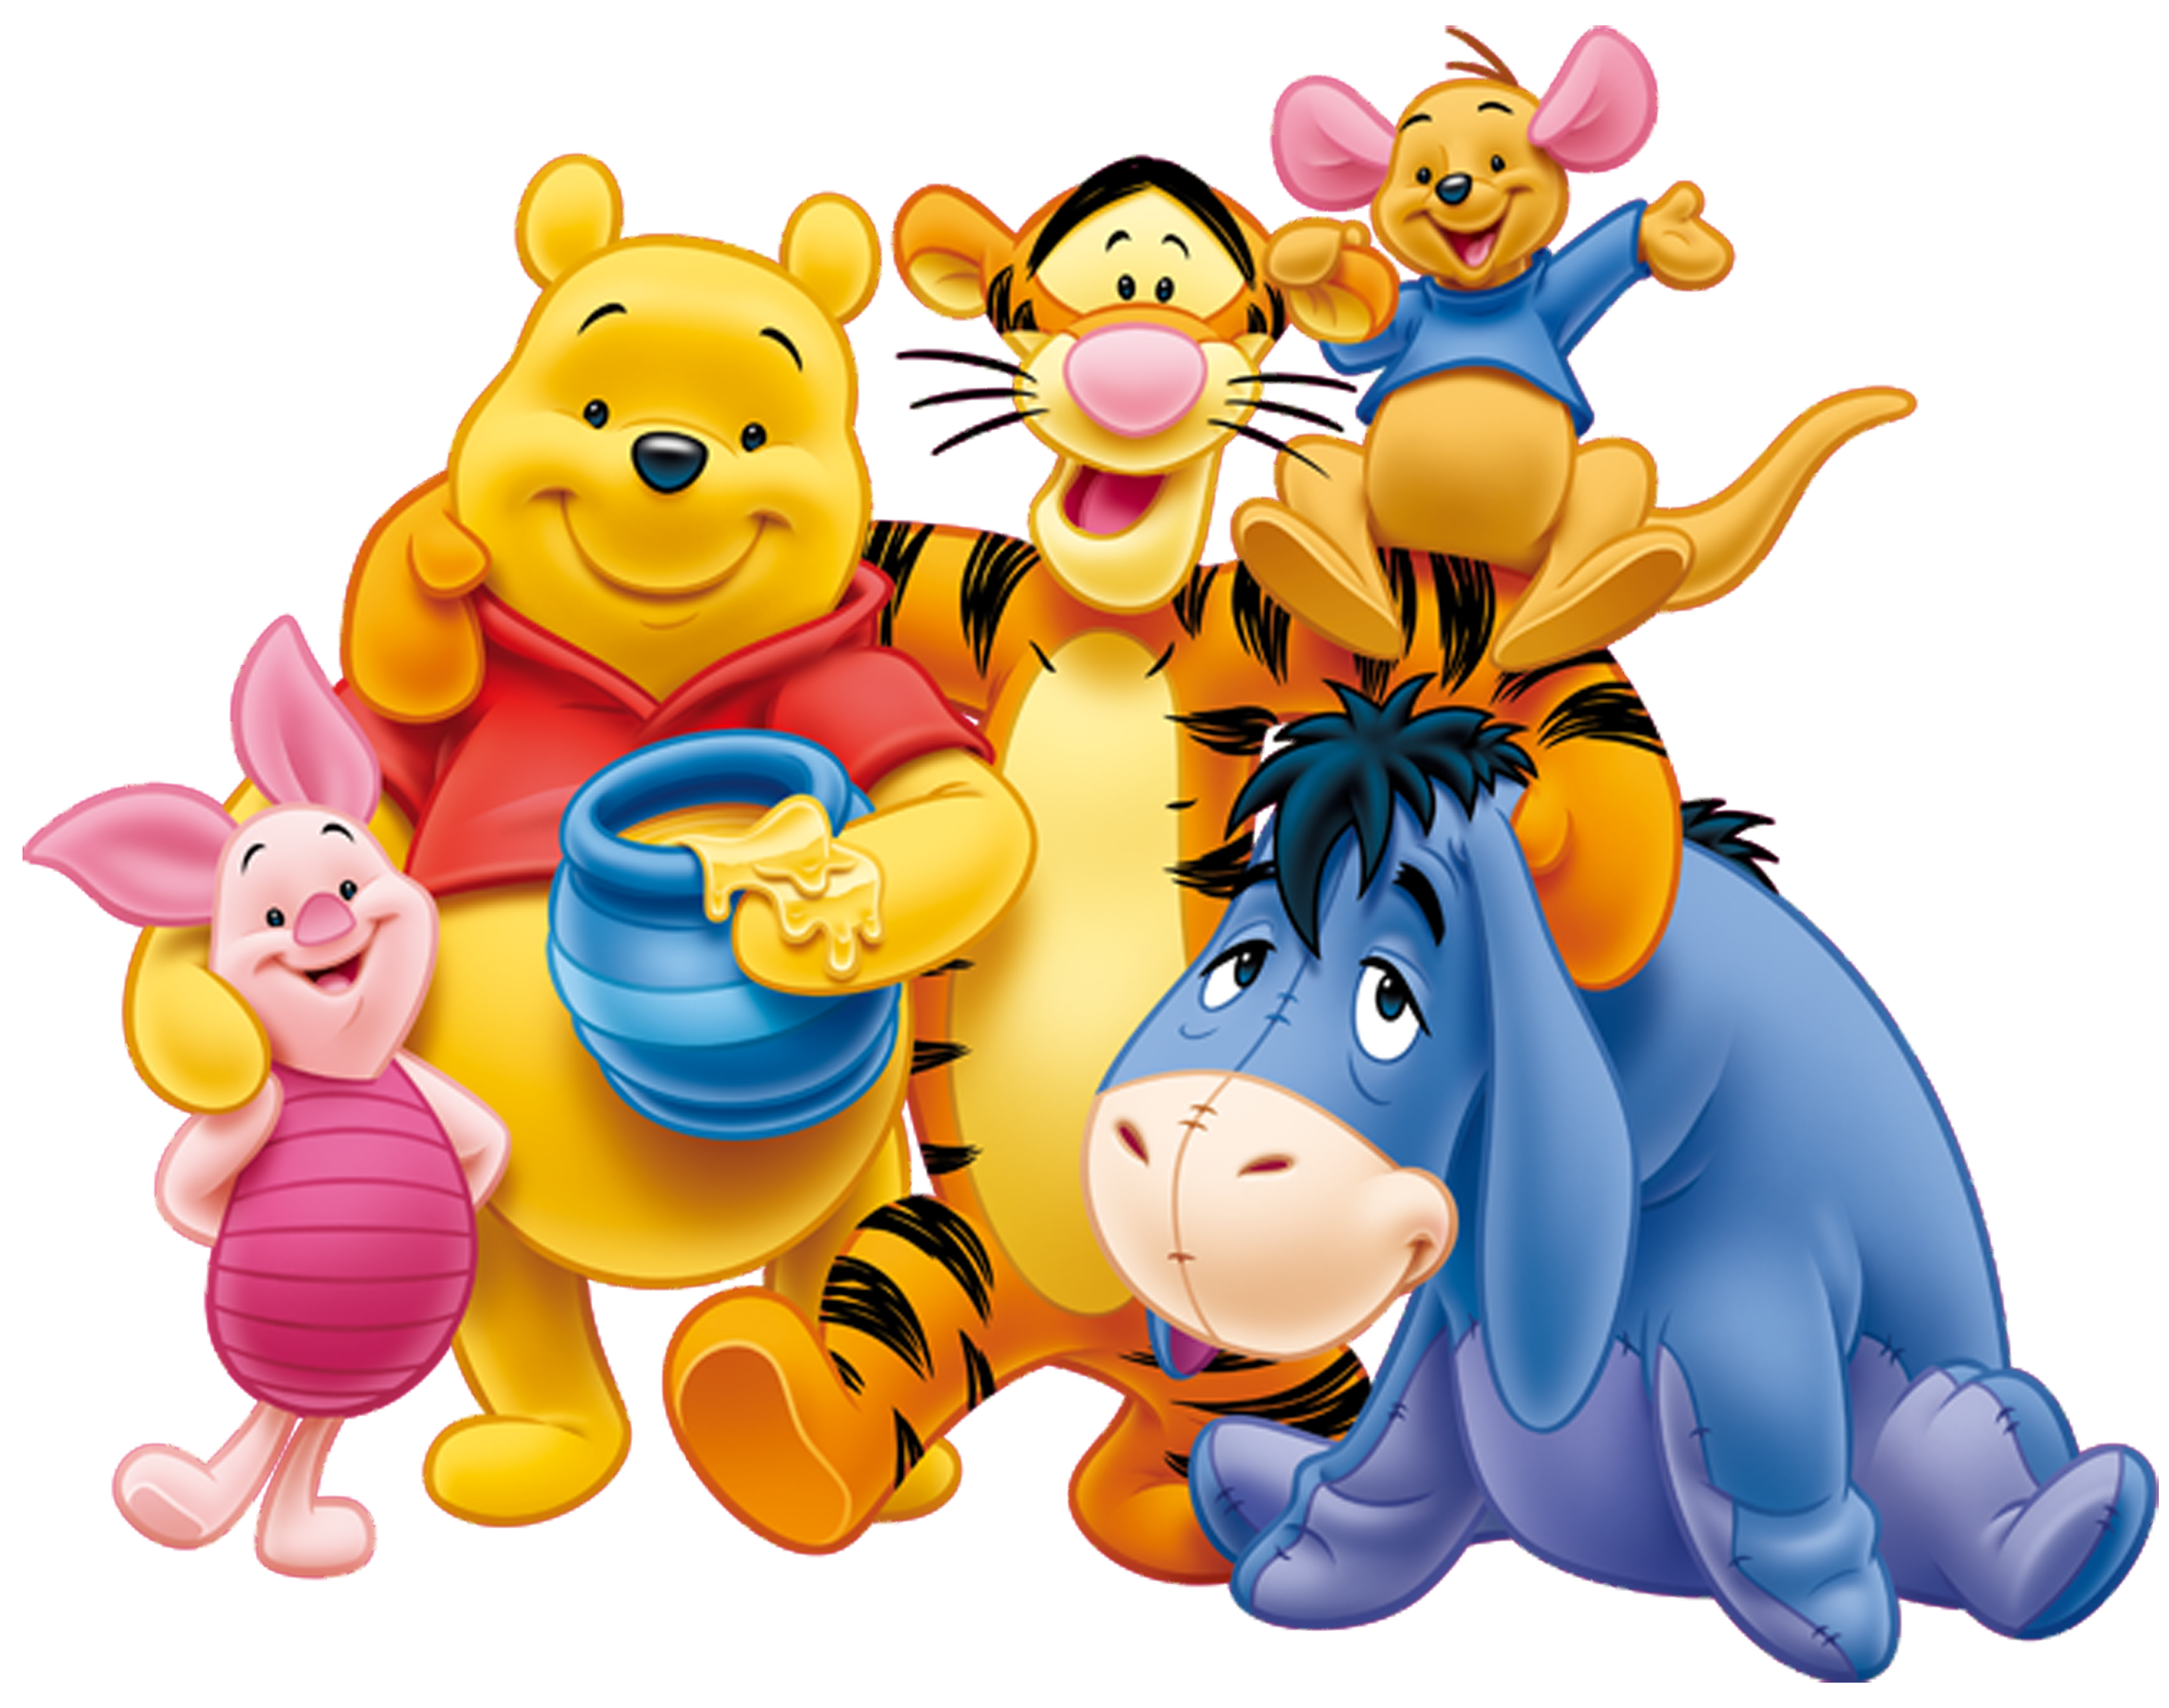 Clipart friends transparent background. Winnie the pooh and